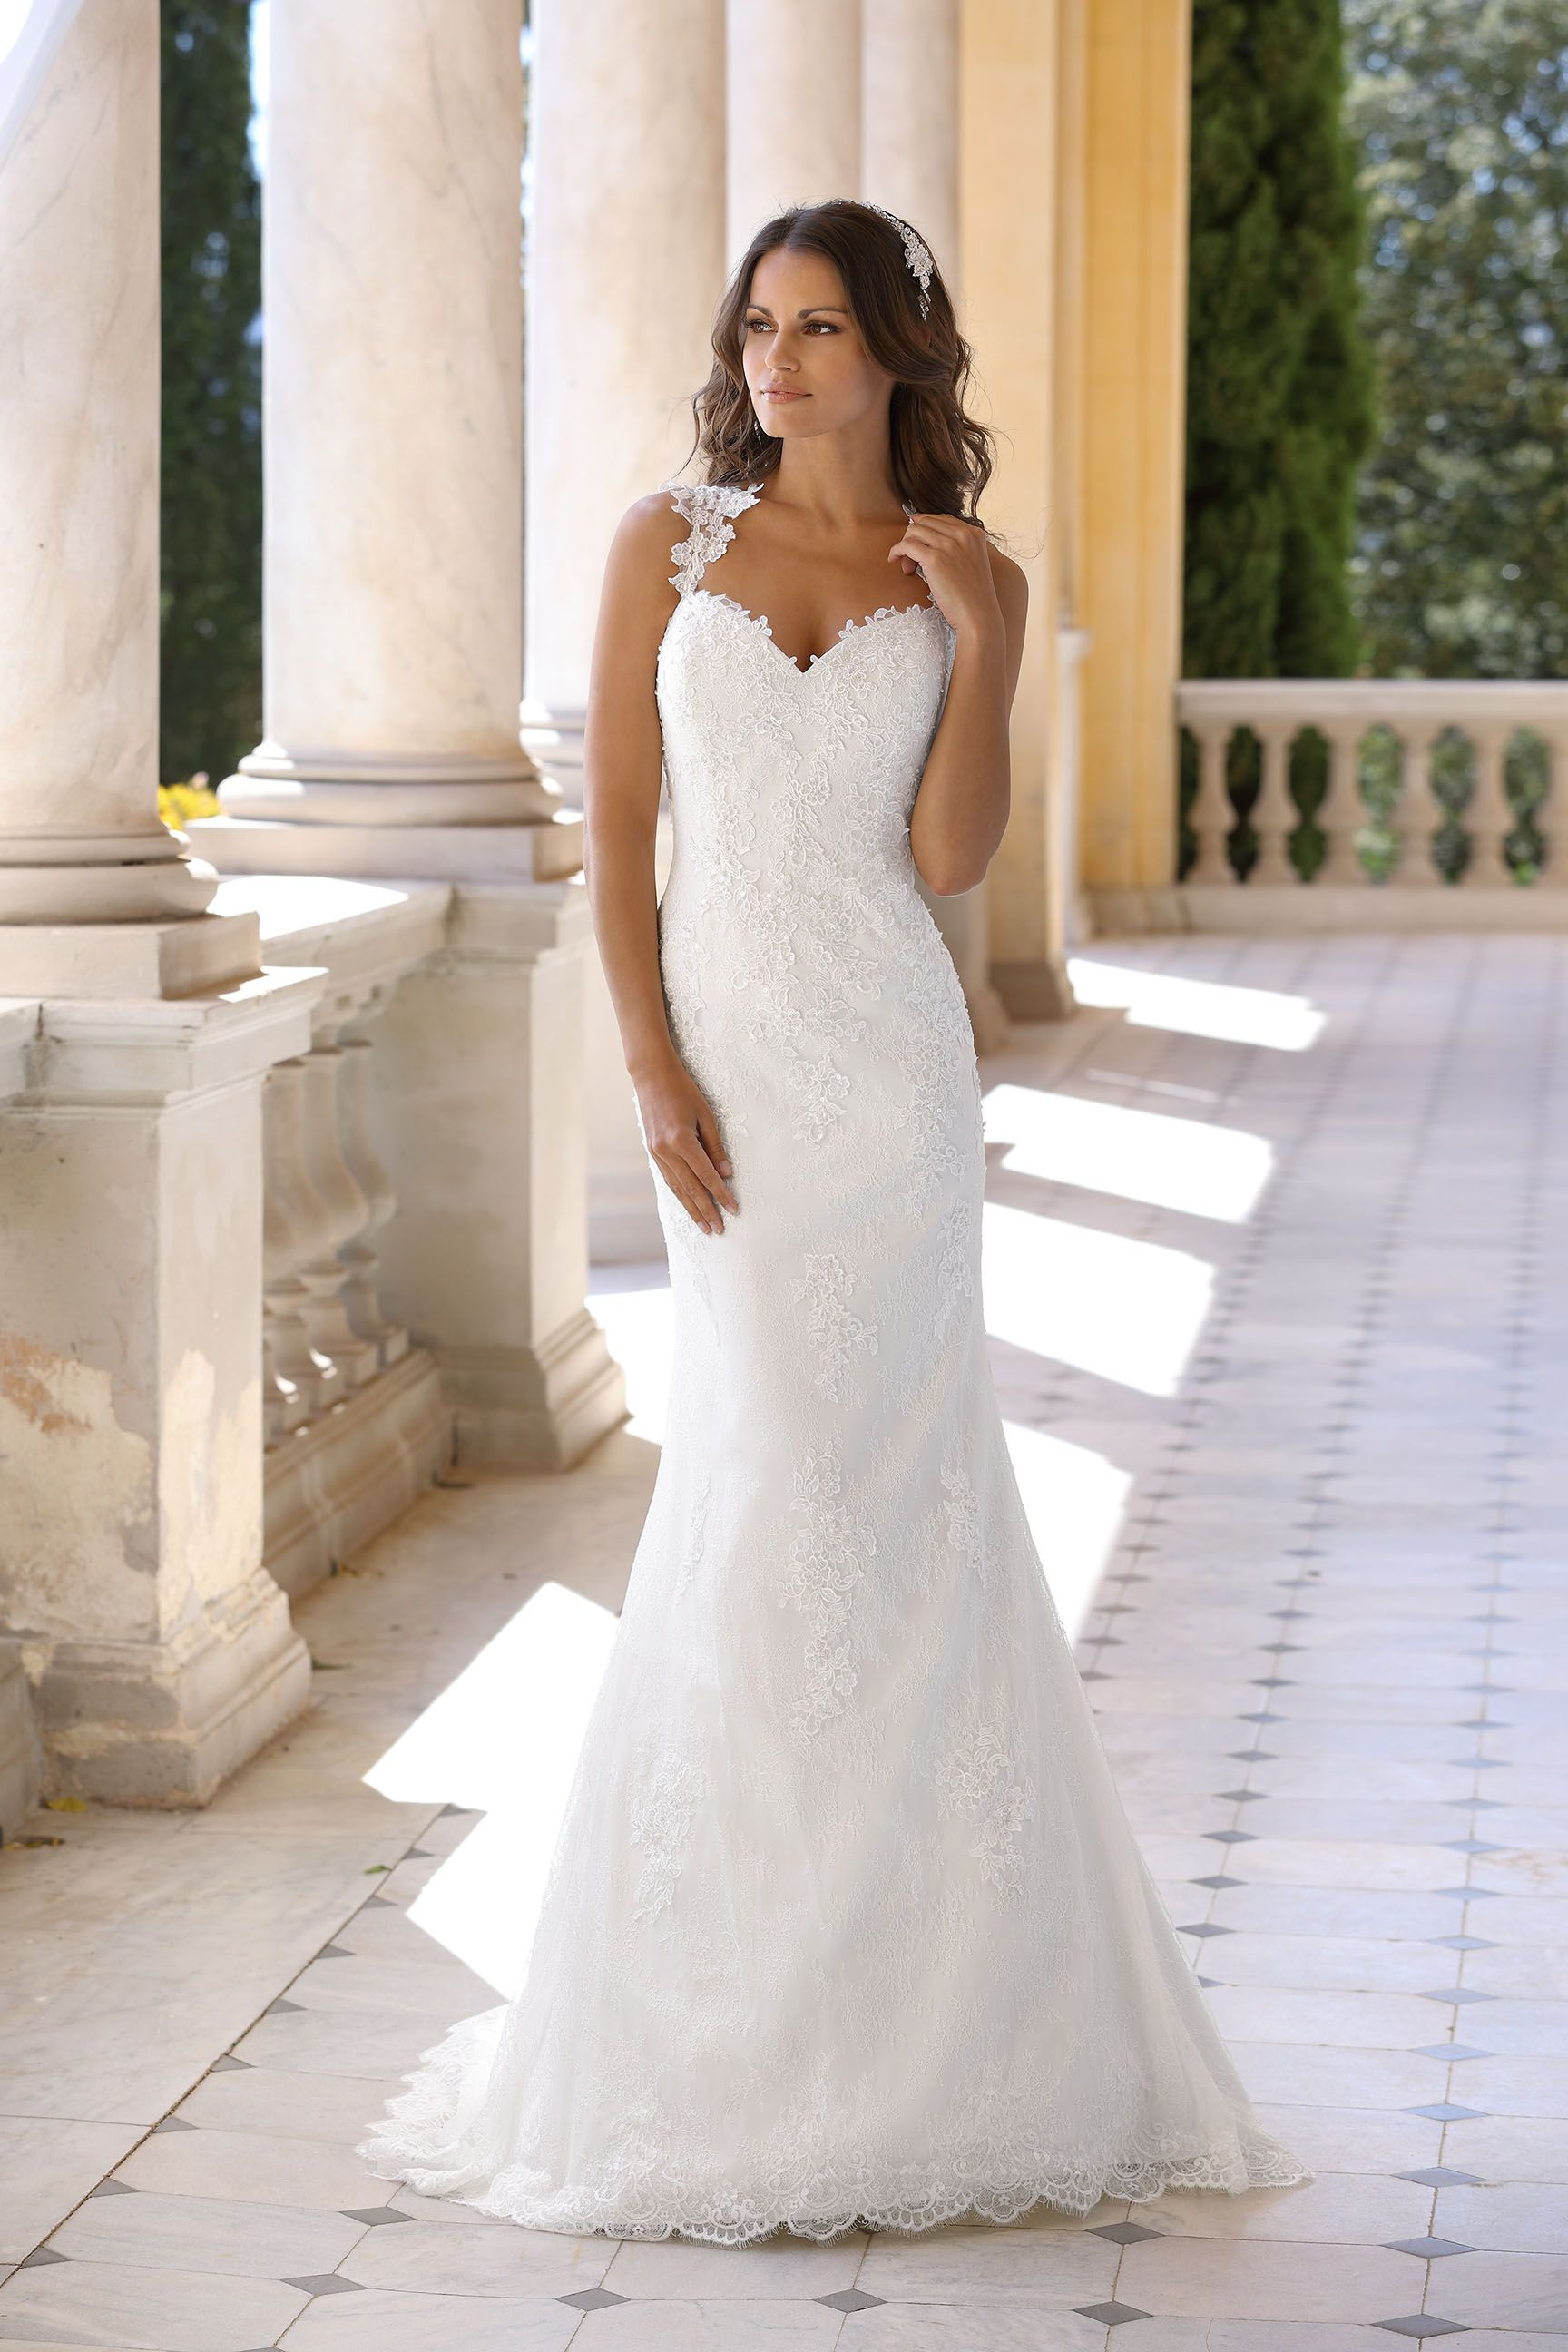 Emma Charlotte 2018 collection - Style Blies | Emma Charlotte 2018 ...